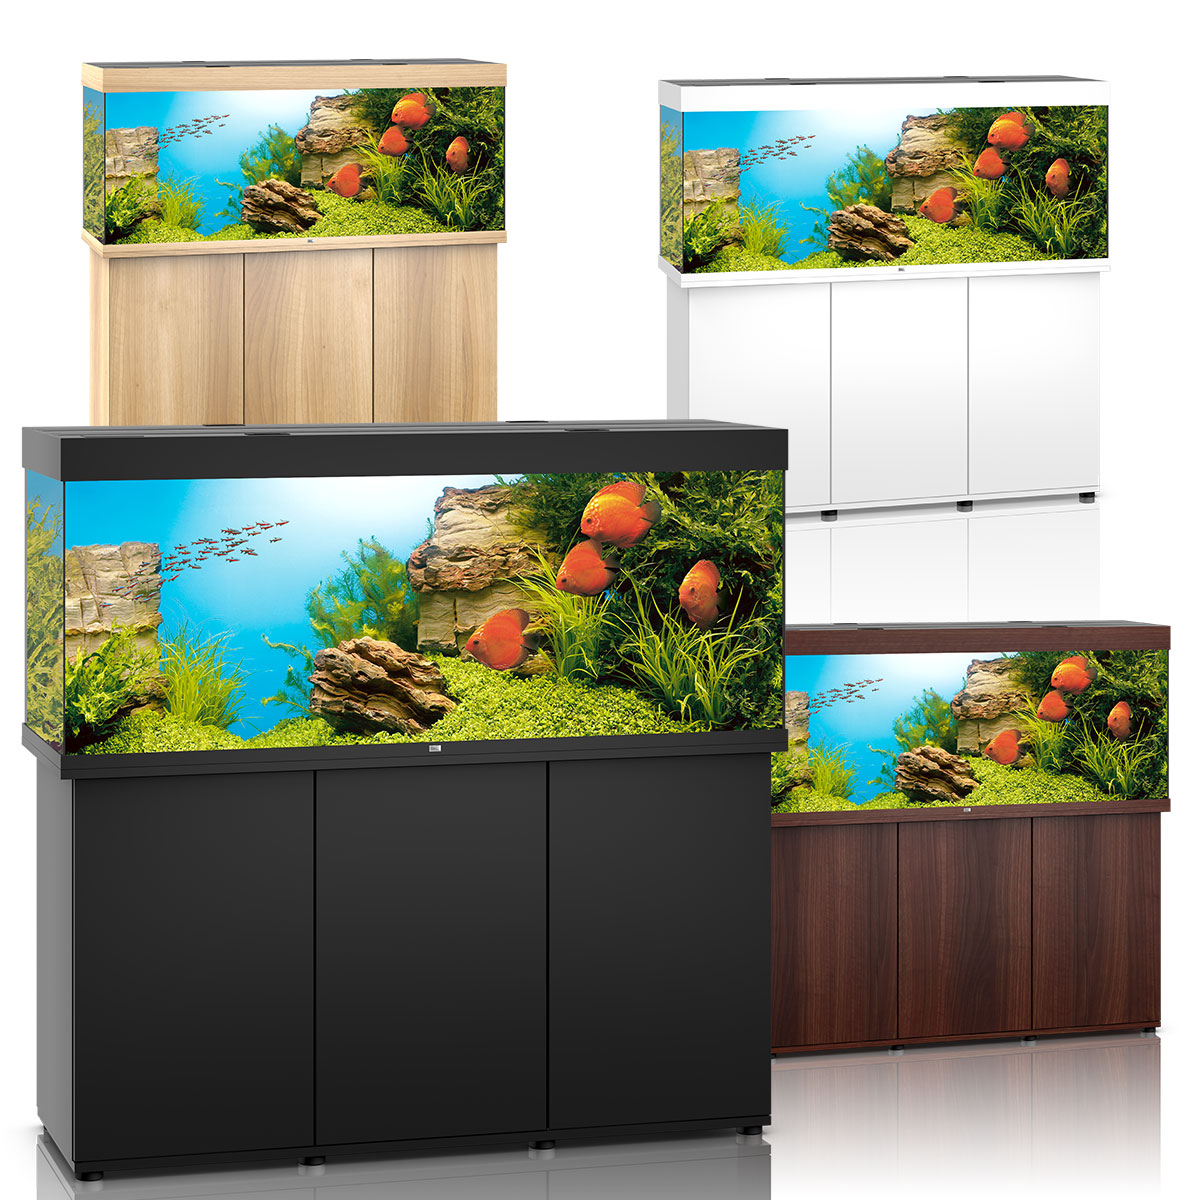 juwel rio 450 led komplett aquarium mit unterschrank sbx. Black Bedroom Furniture Sets. Home Design Ideas